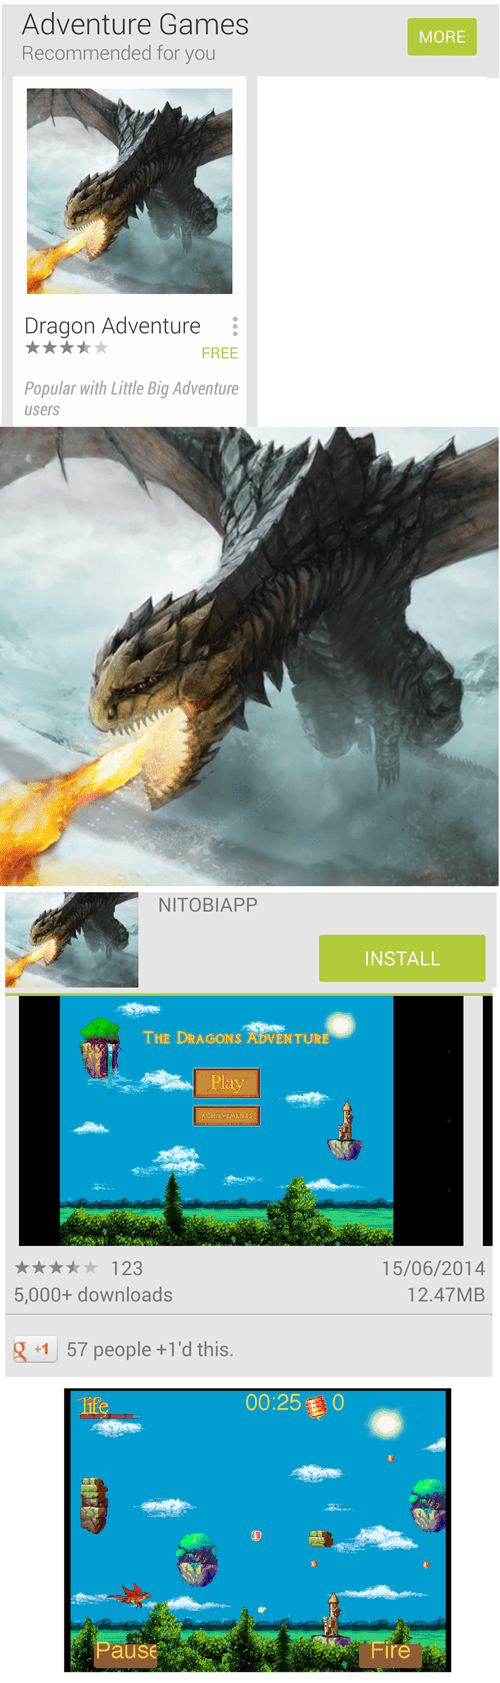 wtf mobile games expectations vs reality dragons - 8291500800